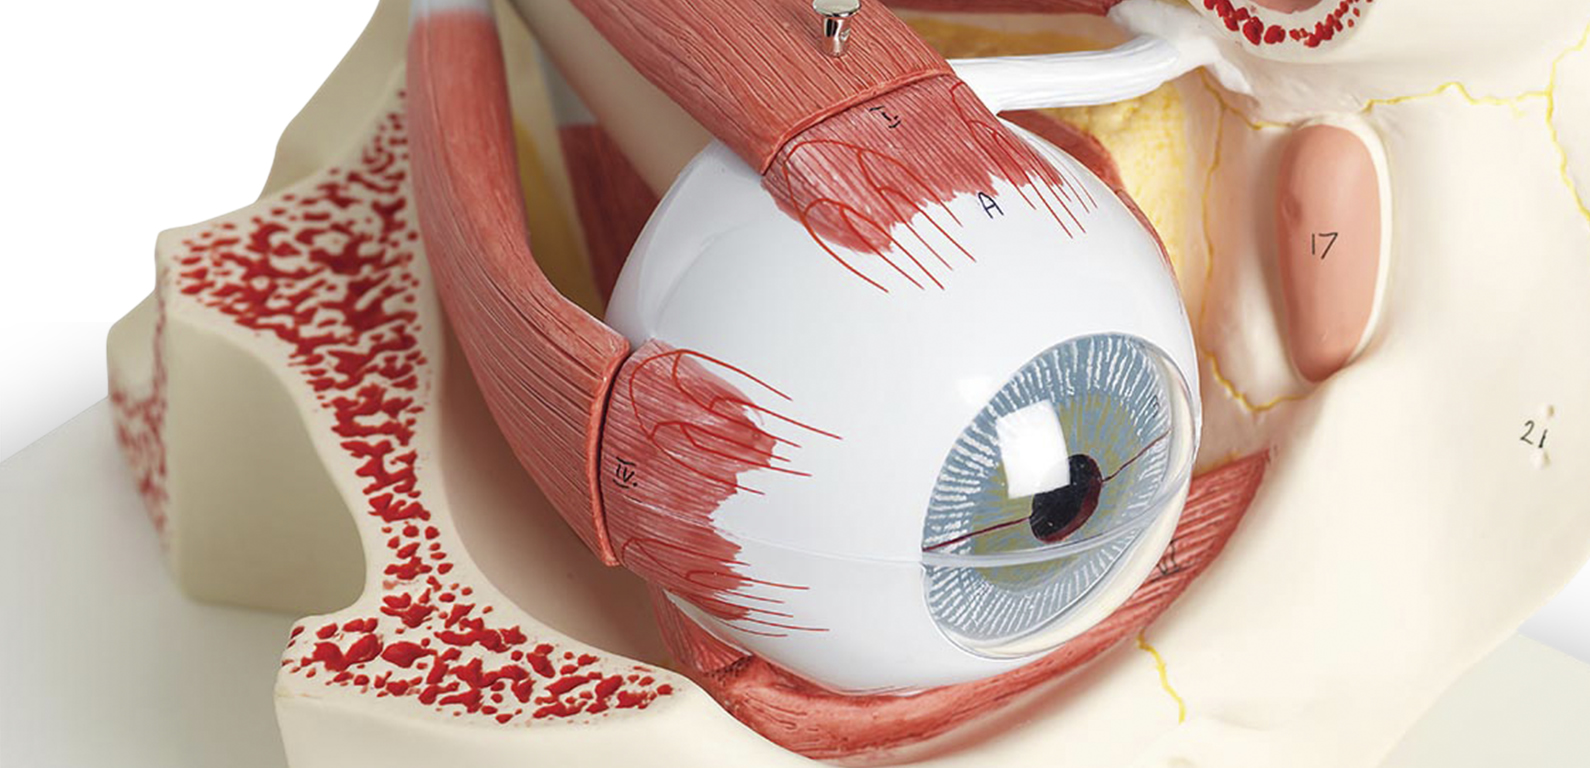 Eye-Model-Healthcare-Education-795x384.jpg